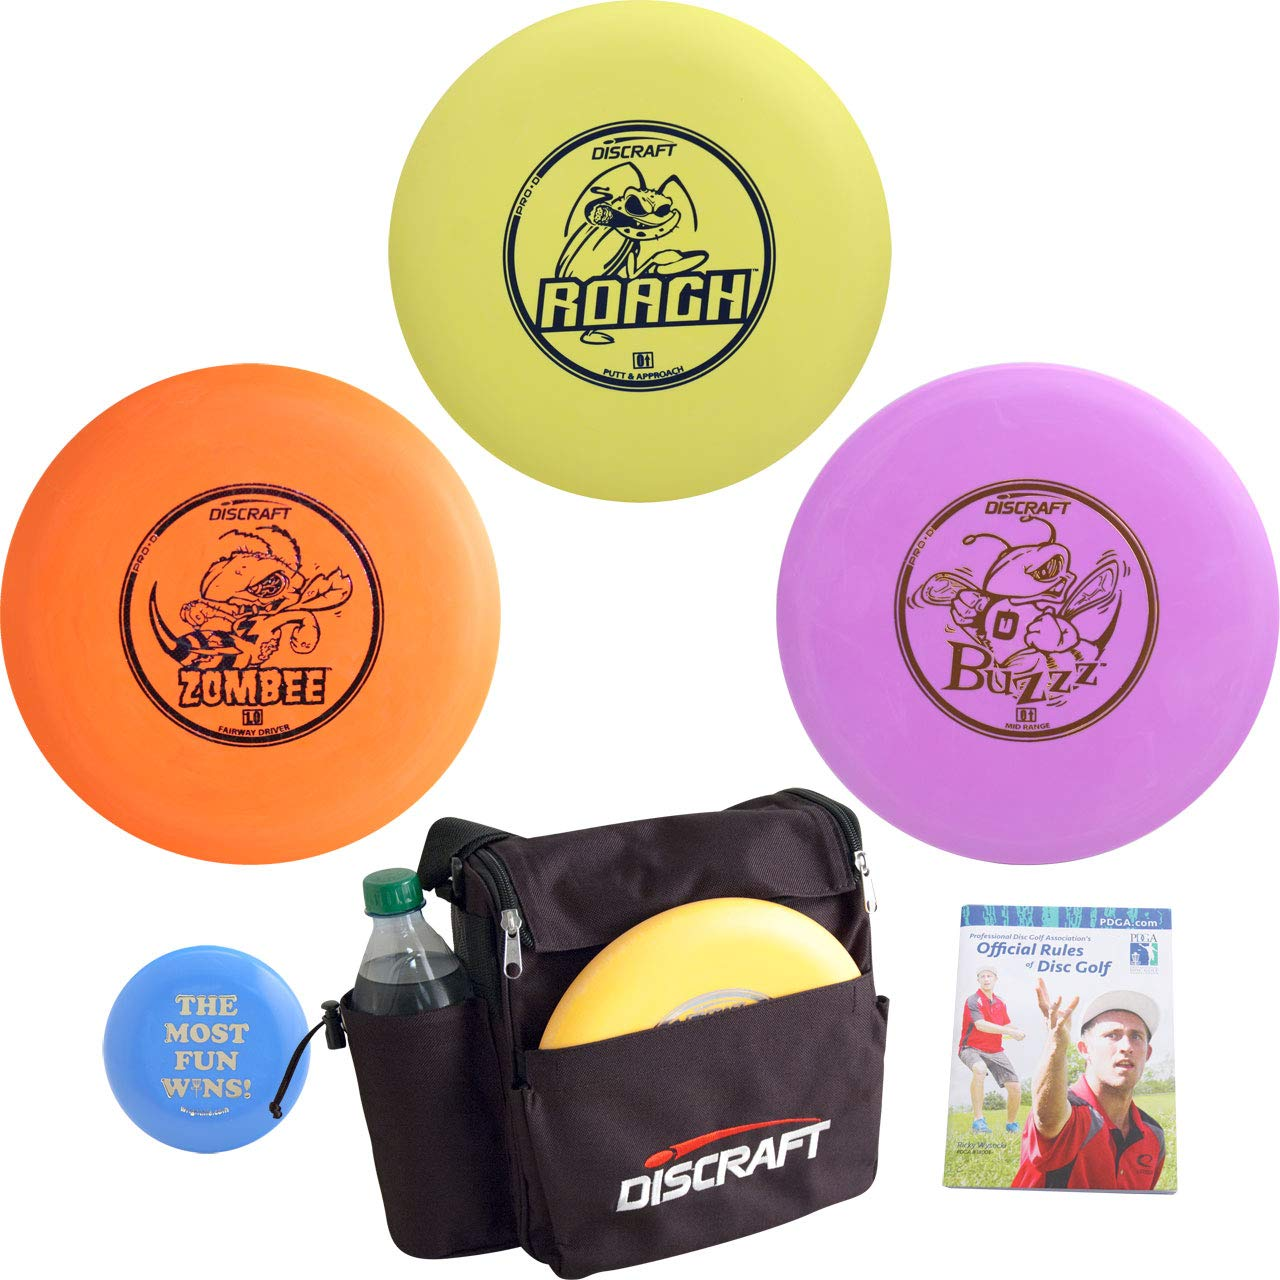 Discraft Complete Disc Golf Gift Set Bundle - Weekender Bag, 3 Discs + Mini Marker Disc & Rules (Colors May Vary) (3 Discs (Driver, mid-Range, Putter, Extras)) by Discraft